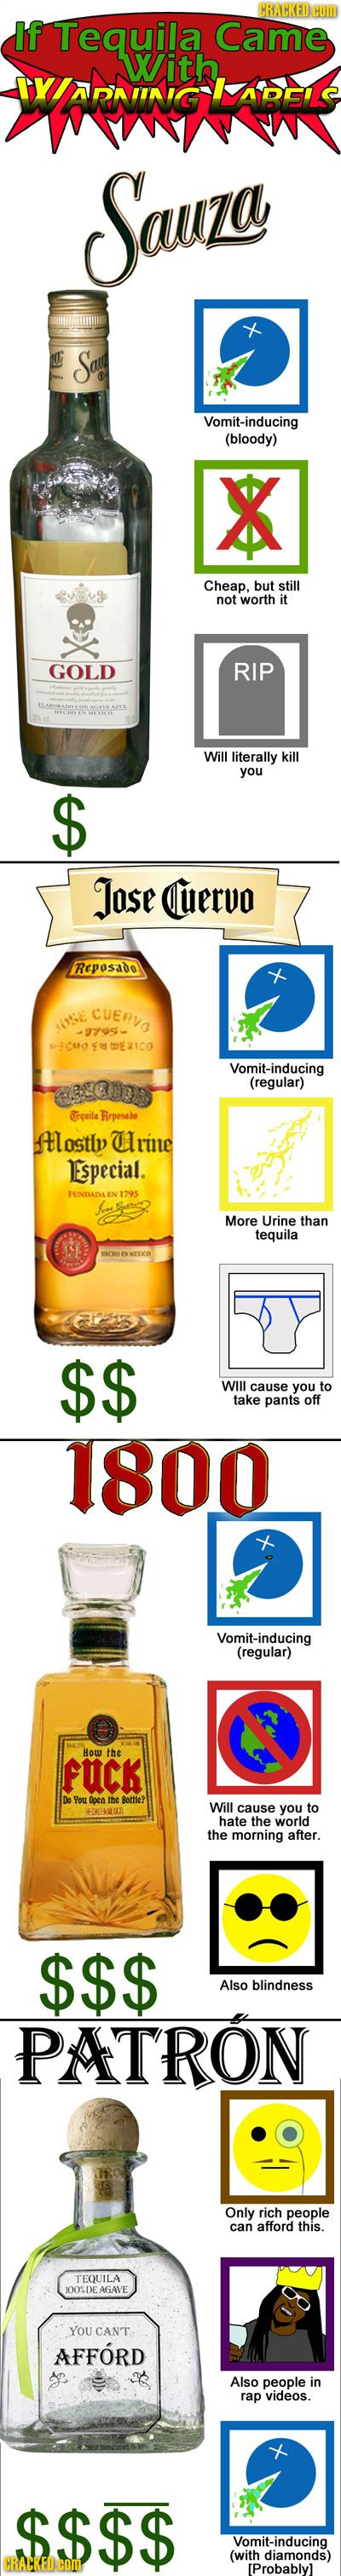 Brands of Tequila, reviewed on Cracked.  The description of Sauza makes me die laughing.